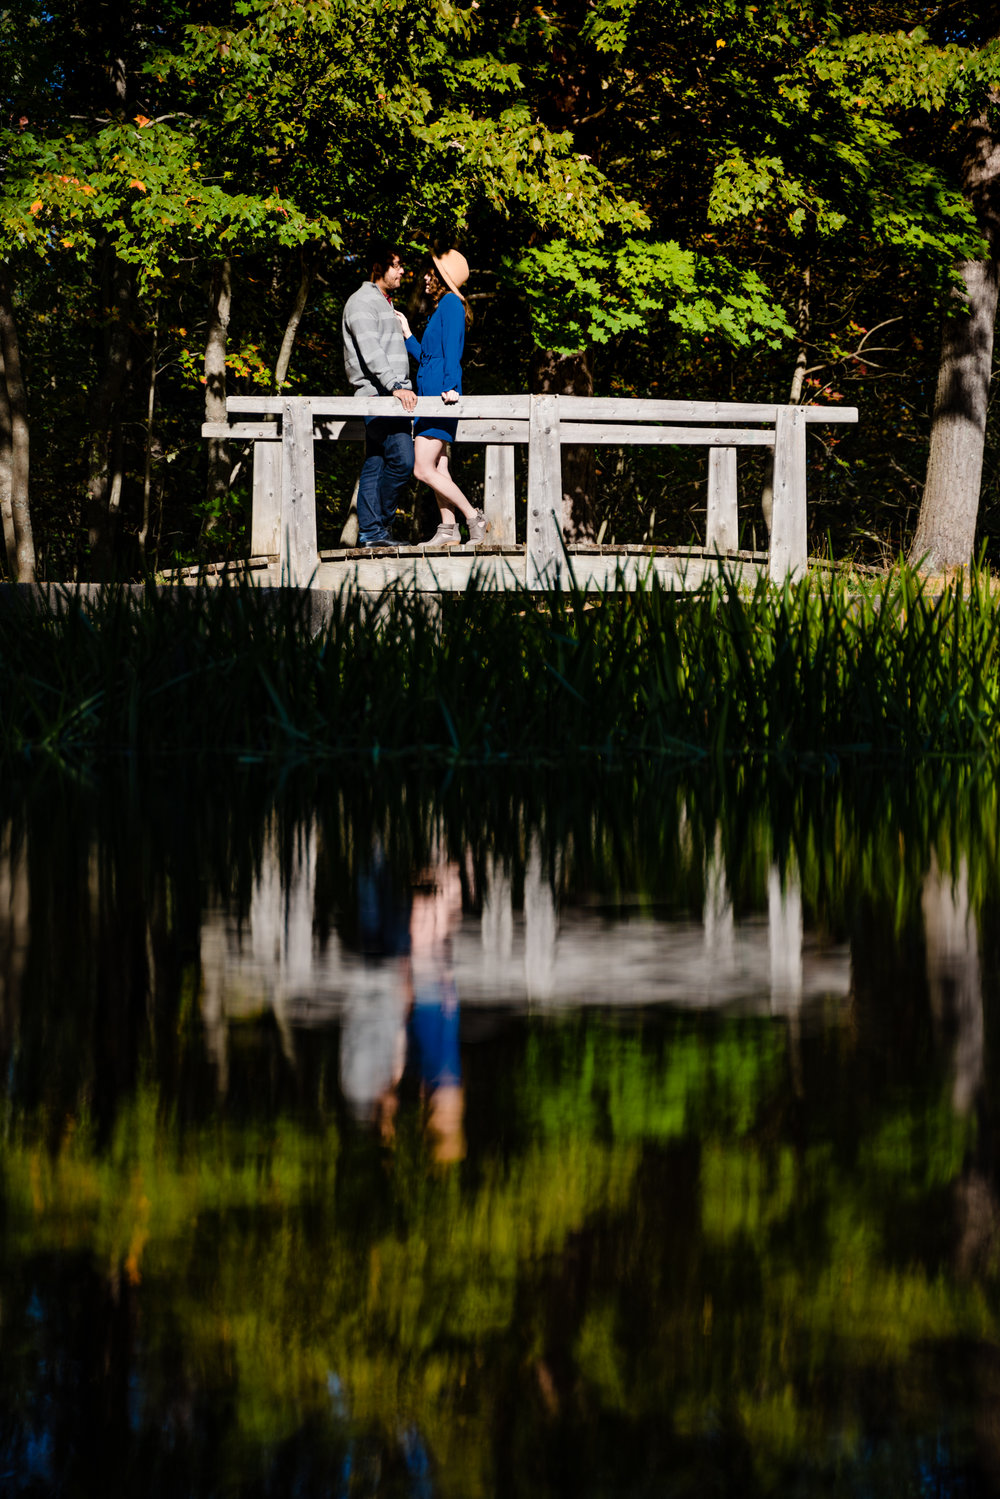 Wedding-halifax-engagement-nova-scotia-ottawa-ontario-pointpleasantpark-Fall-Autumn (3 of 53).jpg